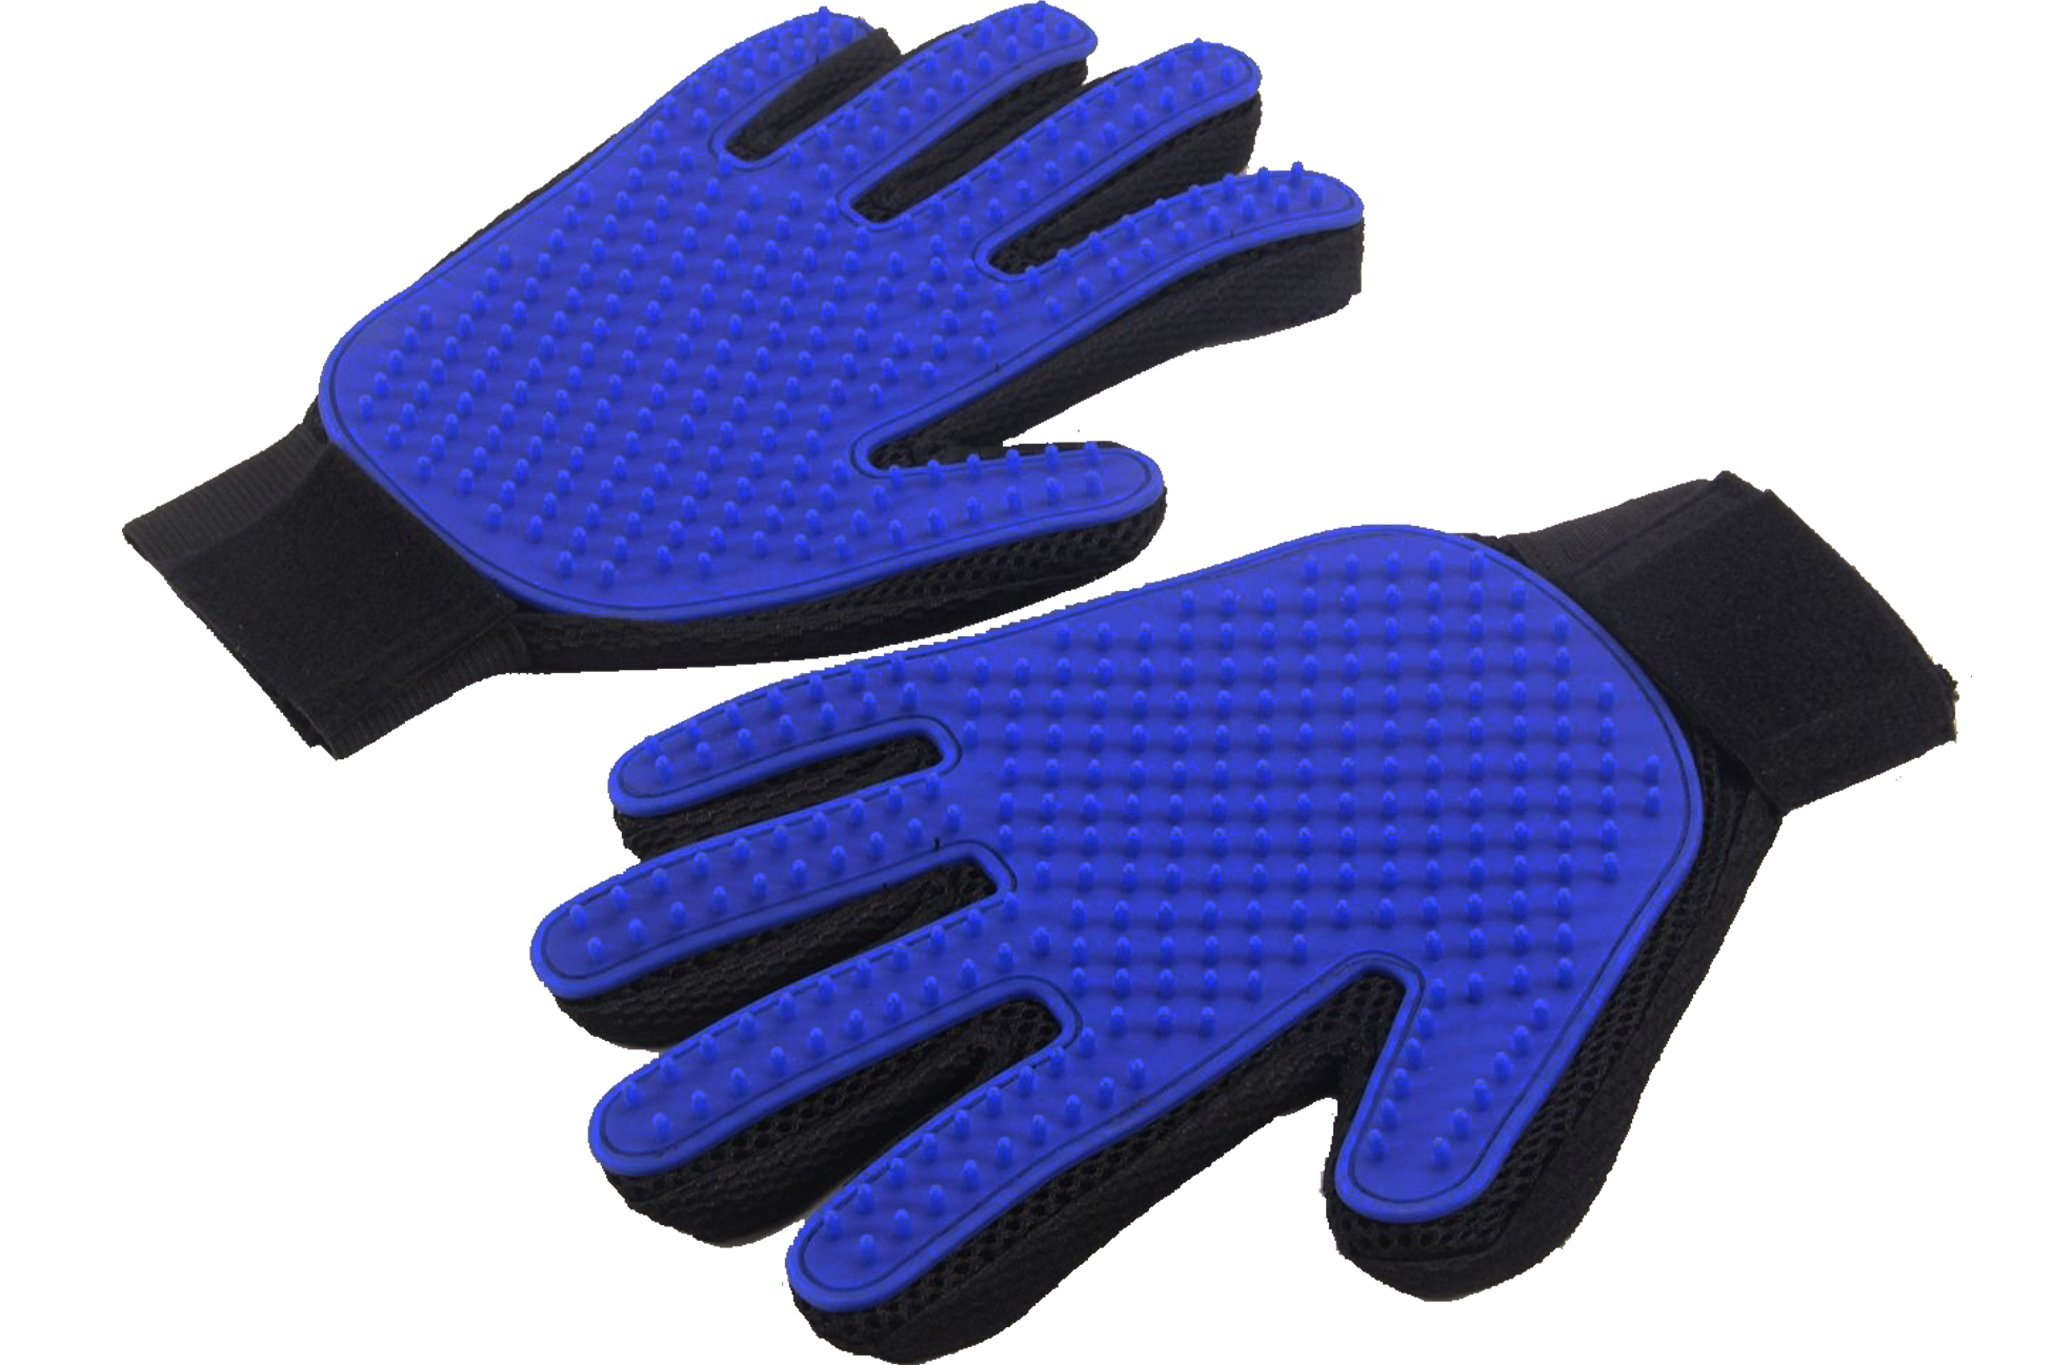 [Upgraded Version] Pet Grooming Gloves - Gentle Brush Gloves - Efficient Pet Hair Remover Mitt - Massage Tool with Enhanced Five Finger Design - Perfect for Dogs & Cats with Long & Short Fur